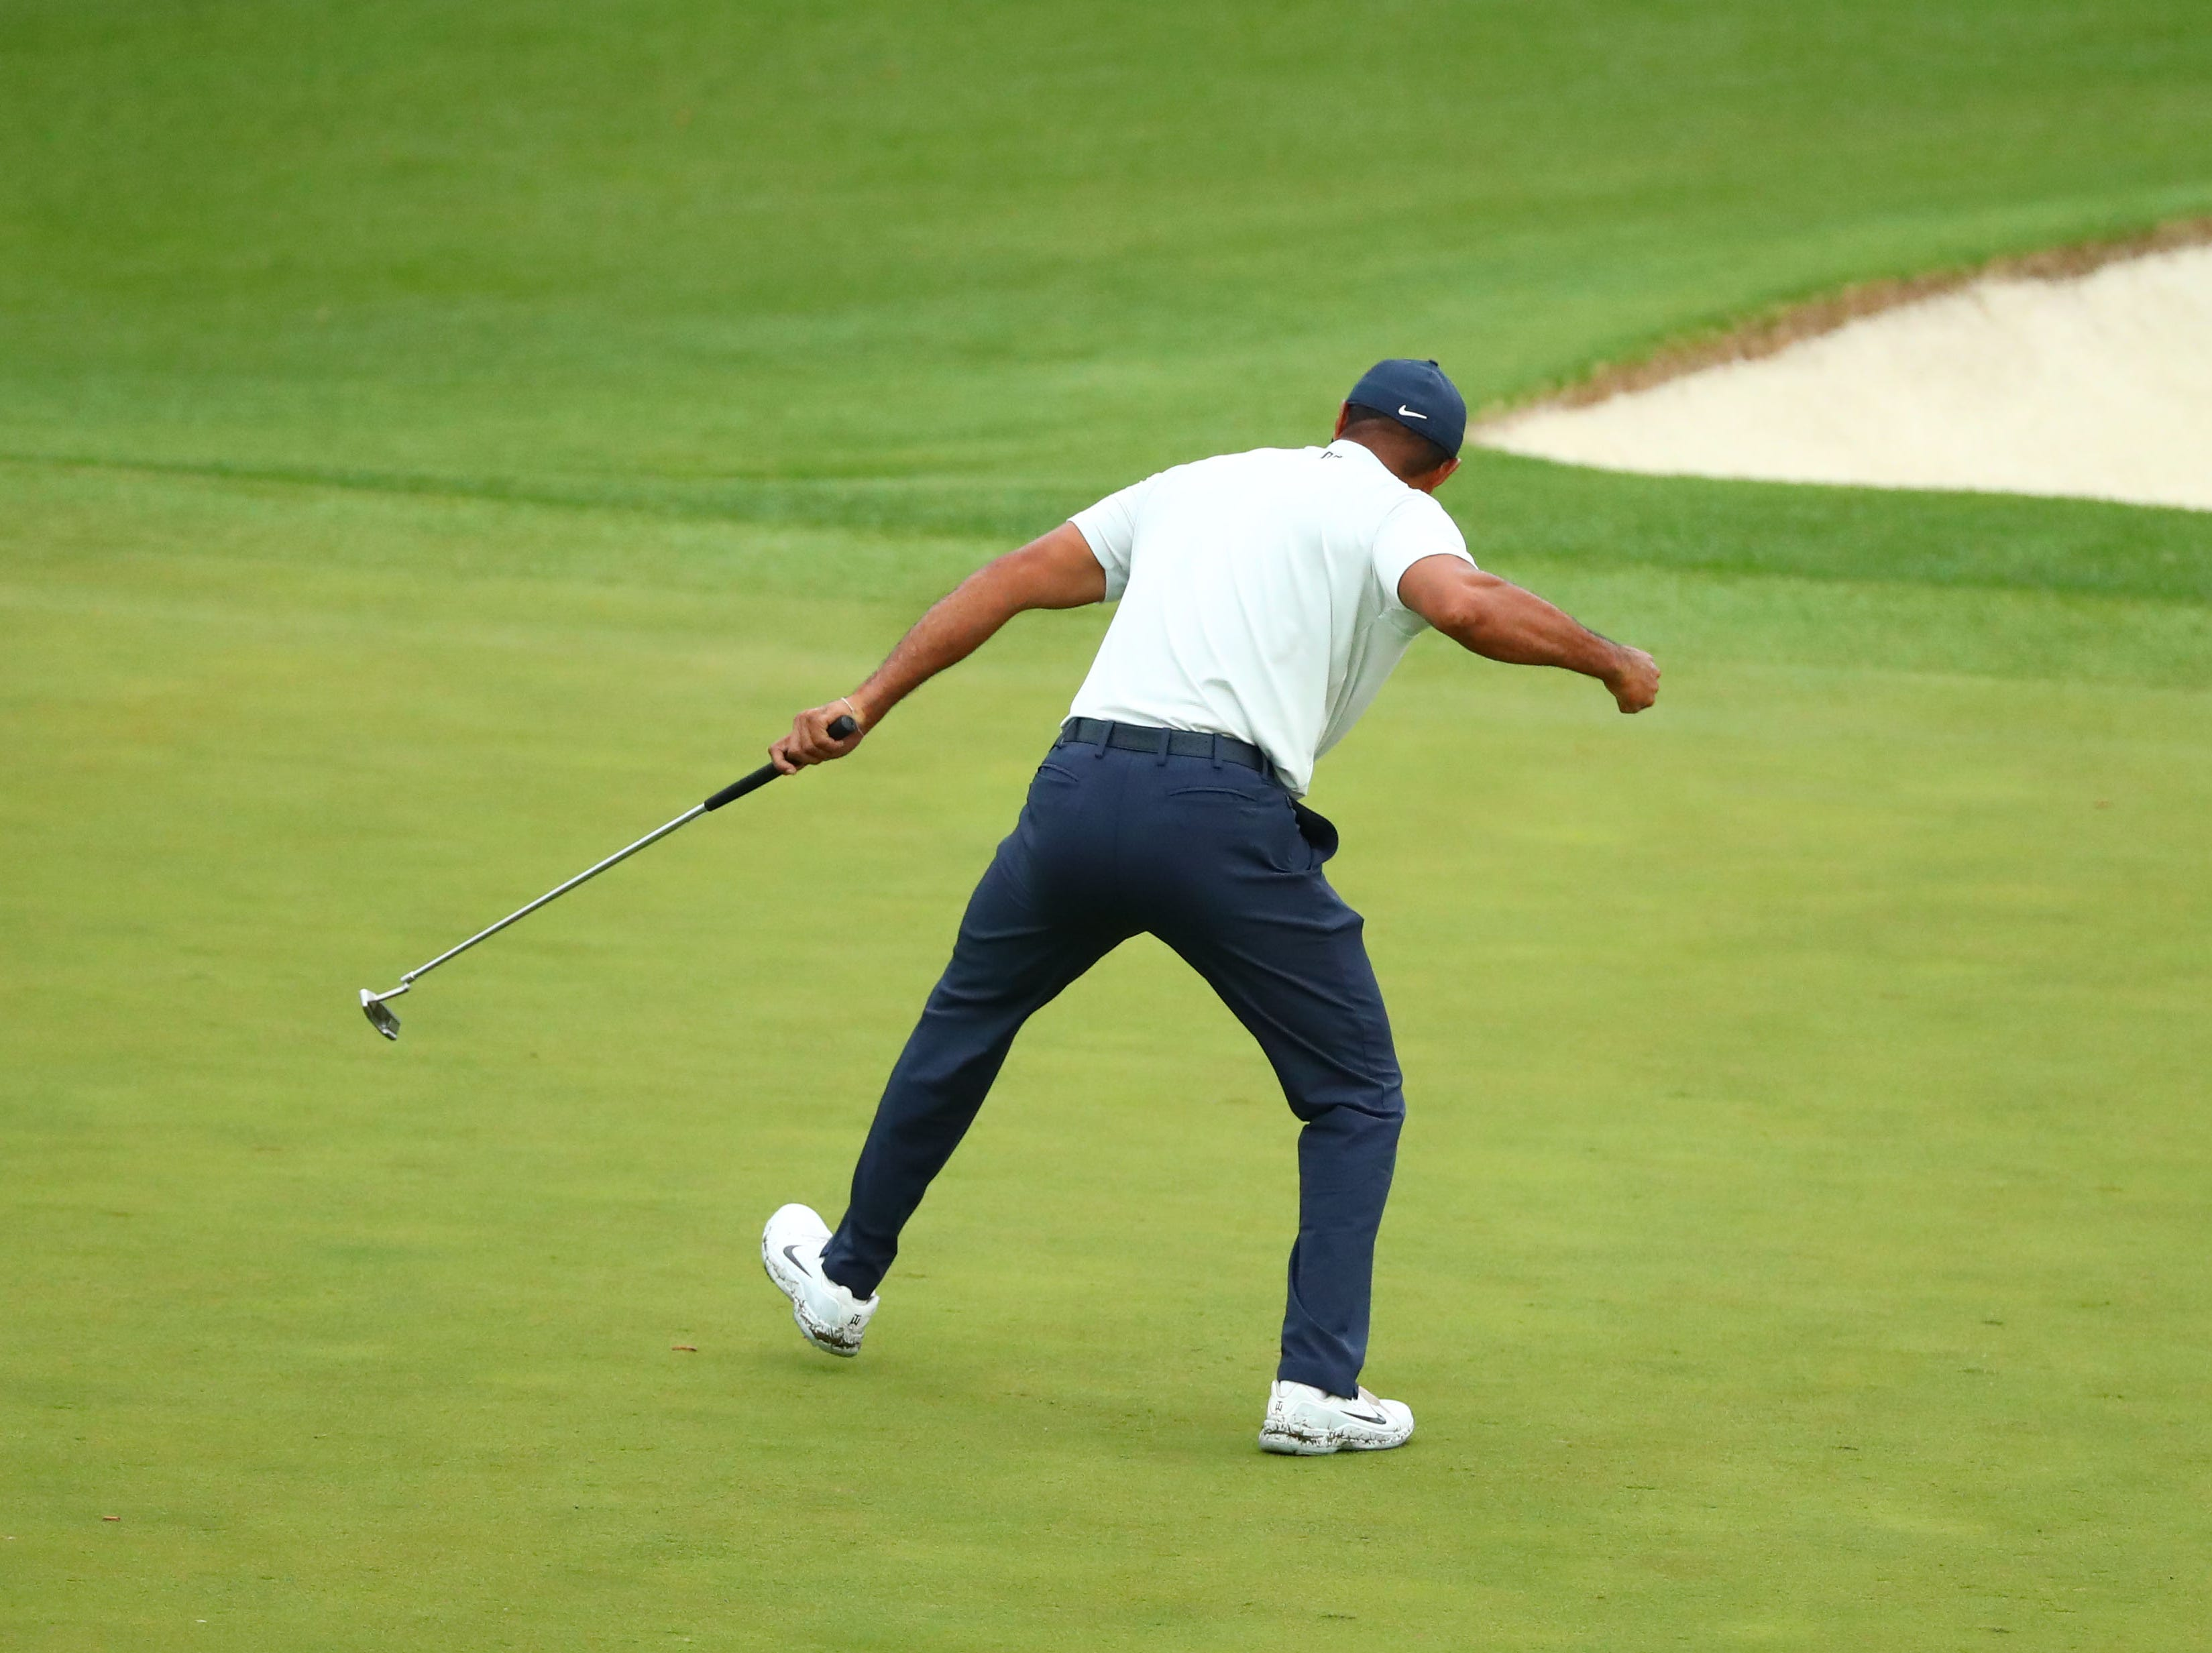 Apr 12, 2019; Augusta, GA, USA; Tiger Woods reacts after making a birdie putt on the 15th green during the second round of The Masters golf tournament at Augusta National Golf Club. Mandatory Credit: Rob Schumacher-USA TODAY Sports